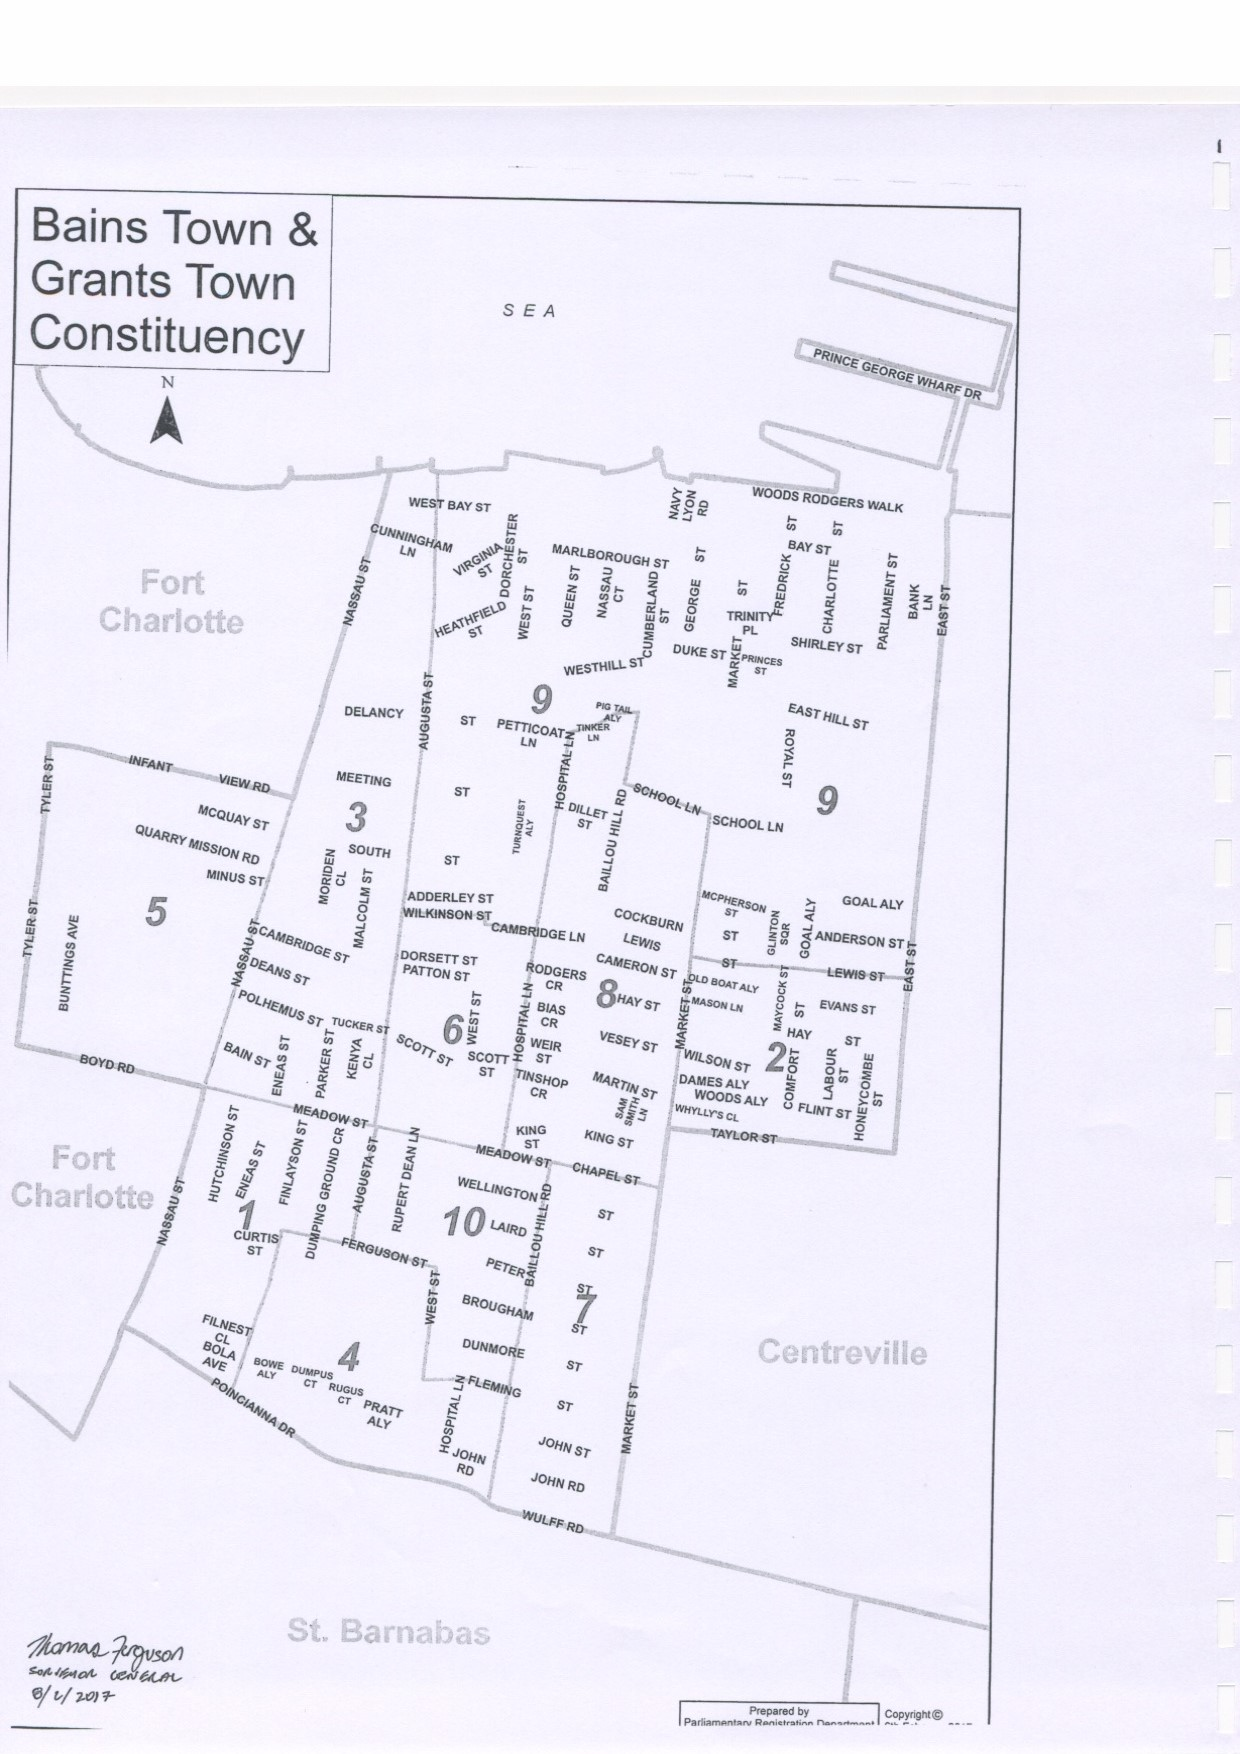 Bain and Grants Town Constituency 2017